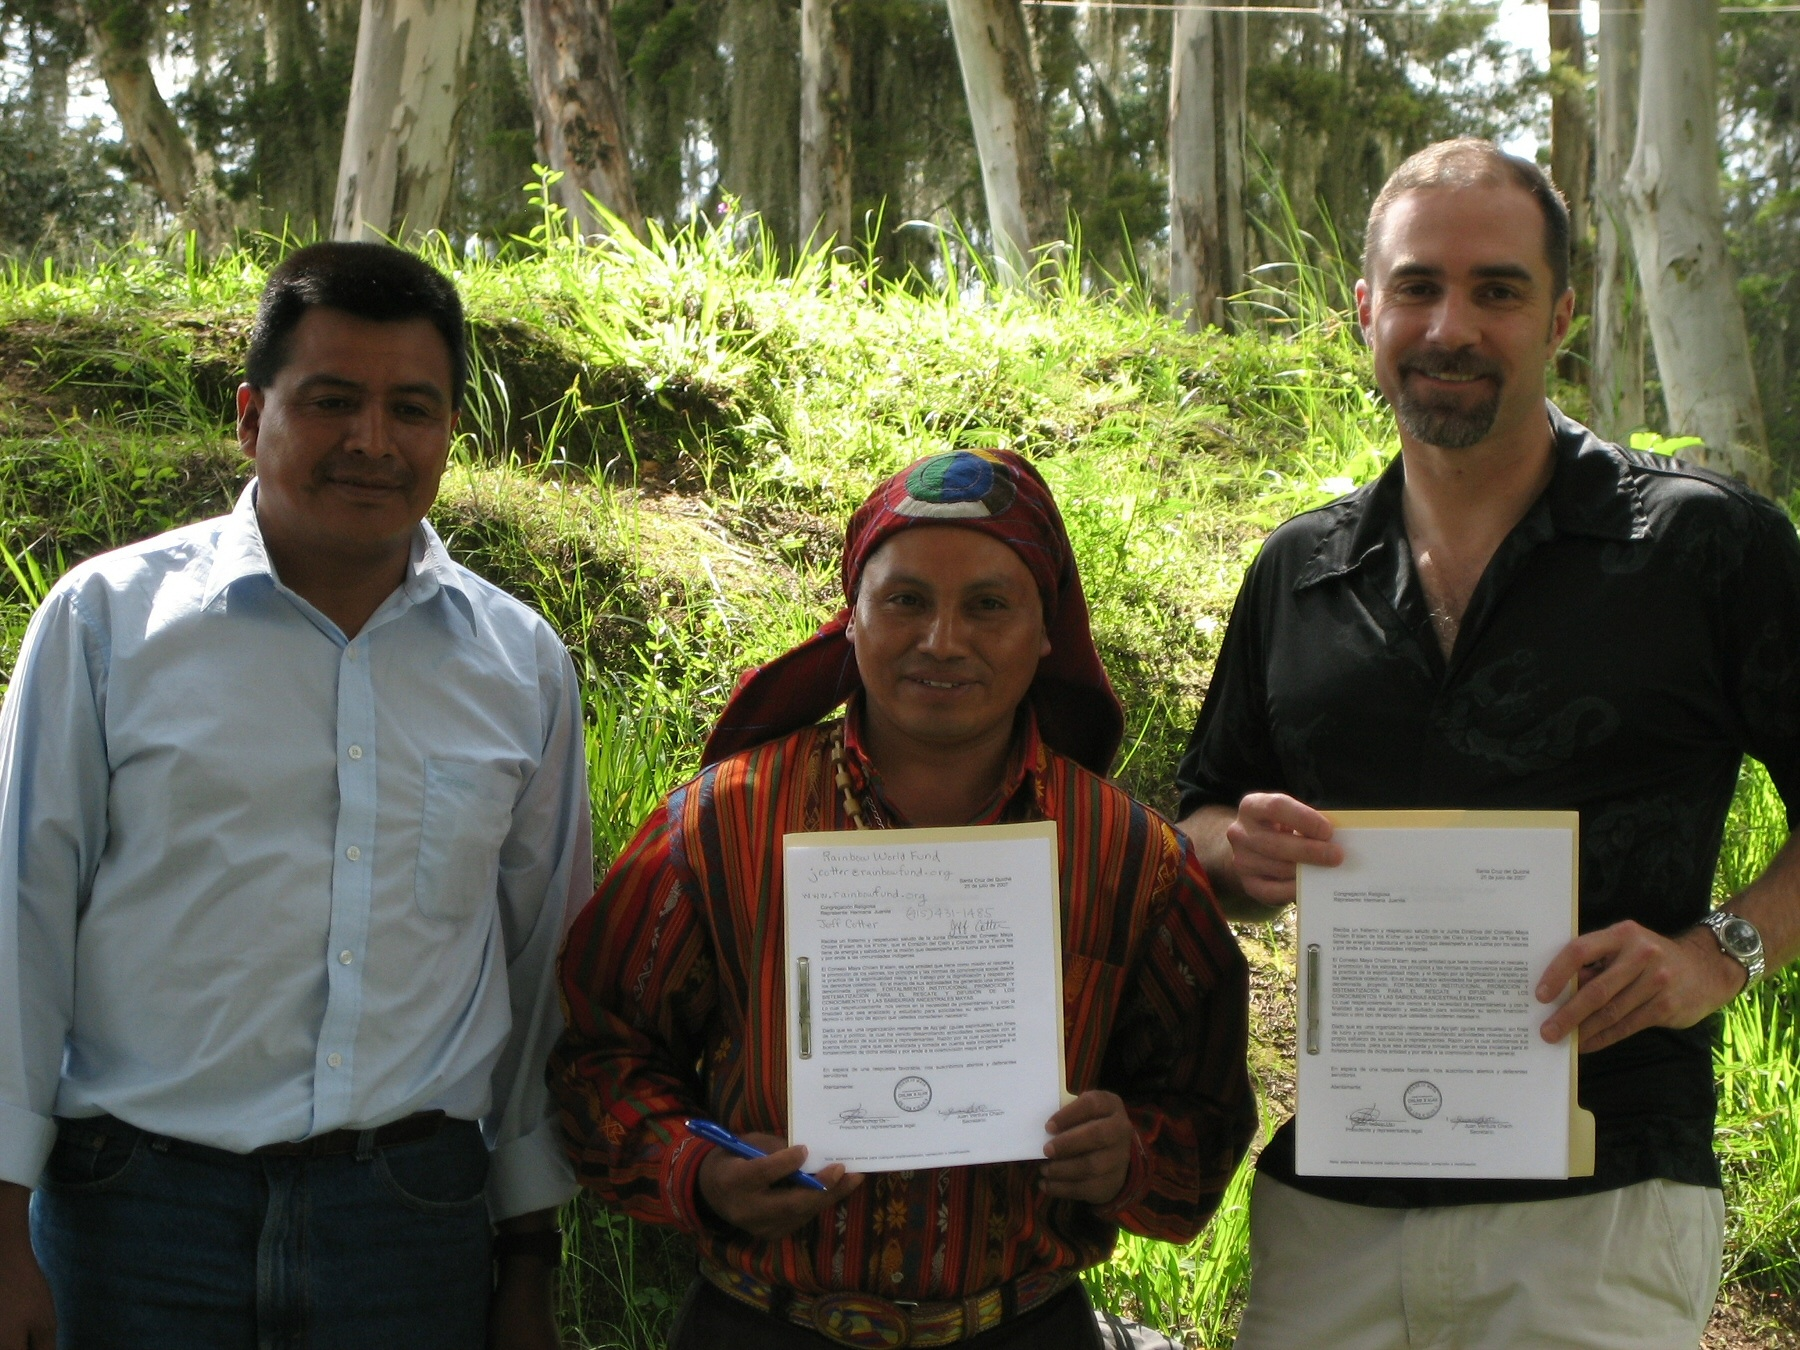 RWF Founder Jeff Cotter with Mayan Shamans. RWF has funded many aid projects in Guatemala.